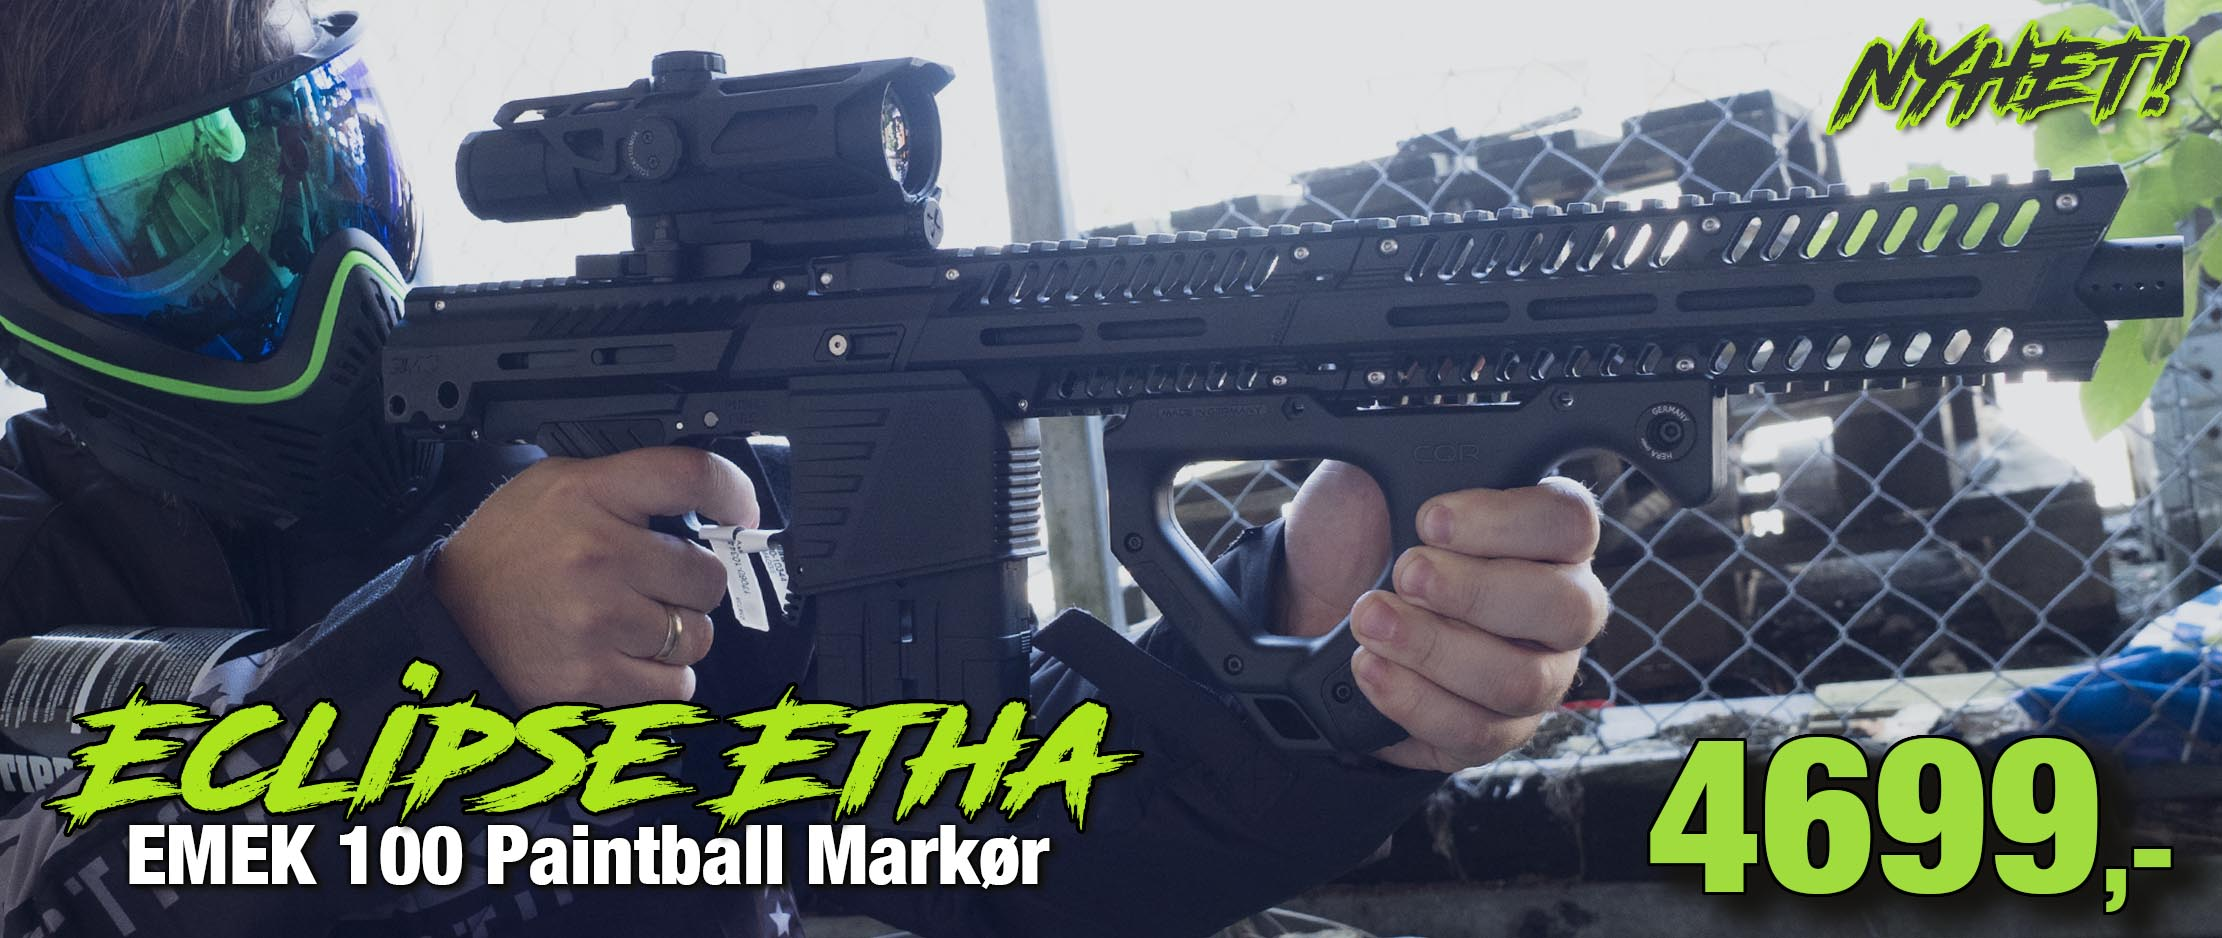 Eclipse Etha EMEK 100 Paintball Markør